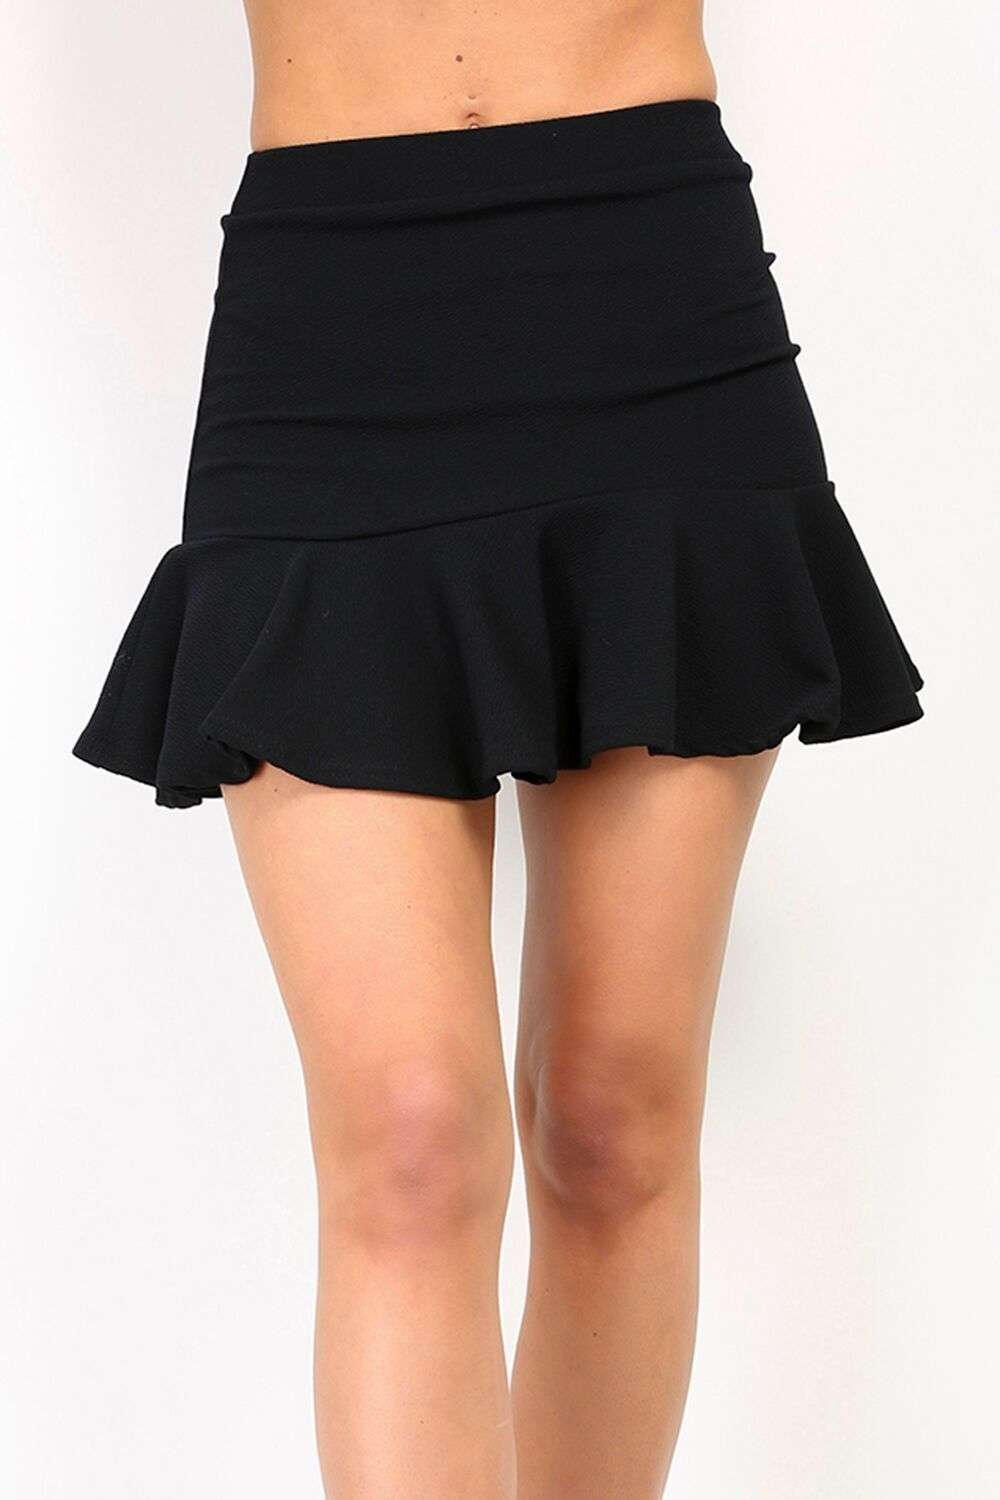 Pamola High Waisted Frill Hem Mini Skirt - bejealous-com